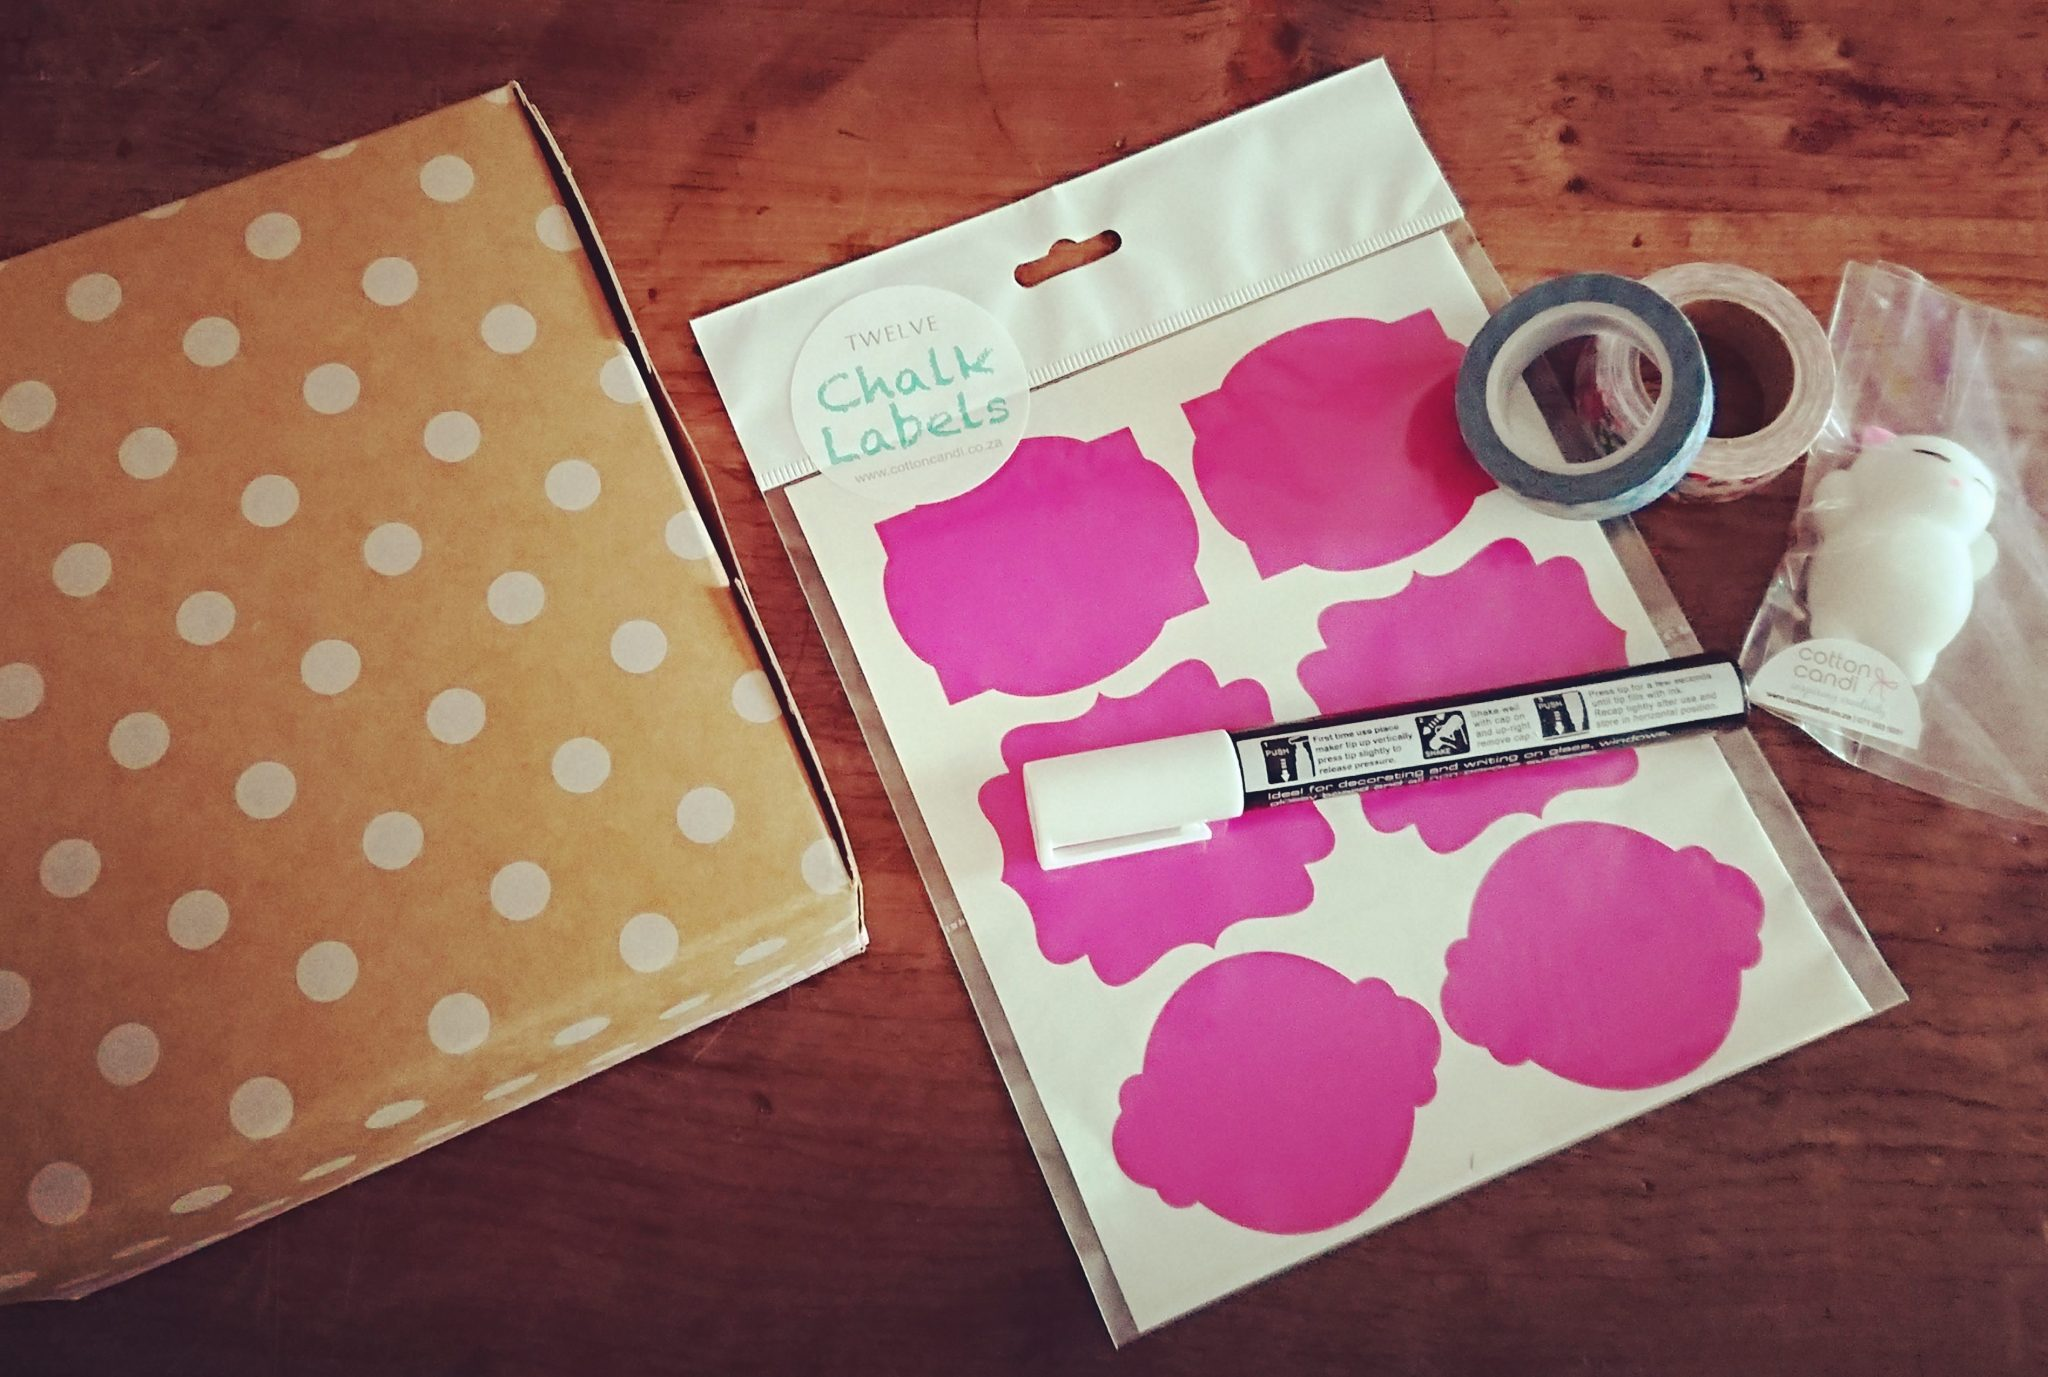 Week 29: Let's Get Crafting: Washi Tape and Chalkboard Stickers